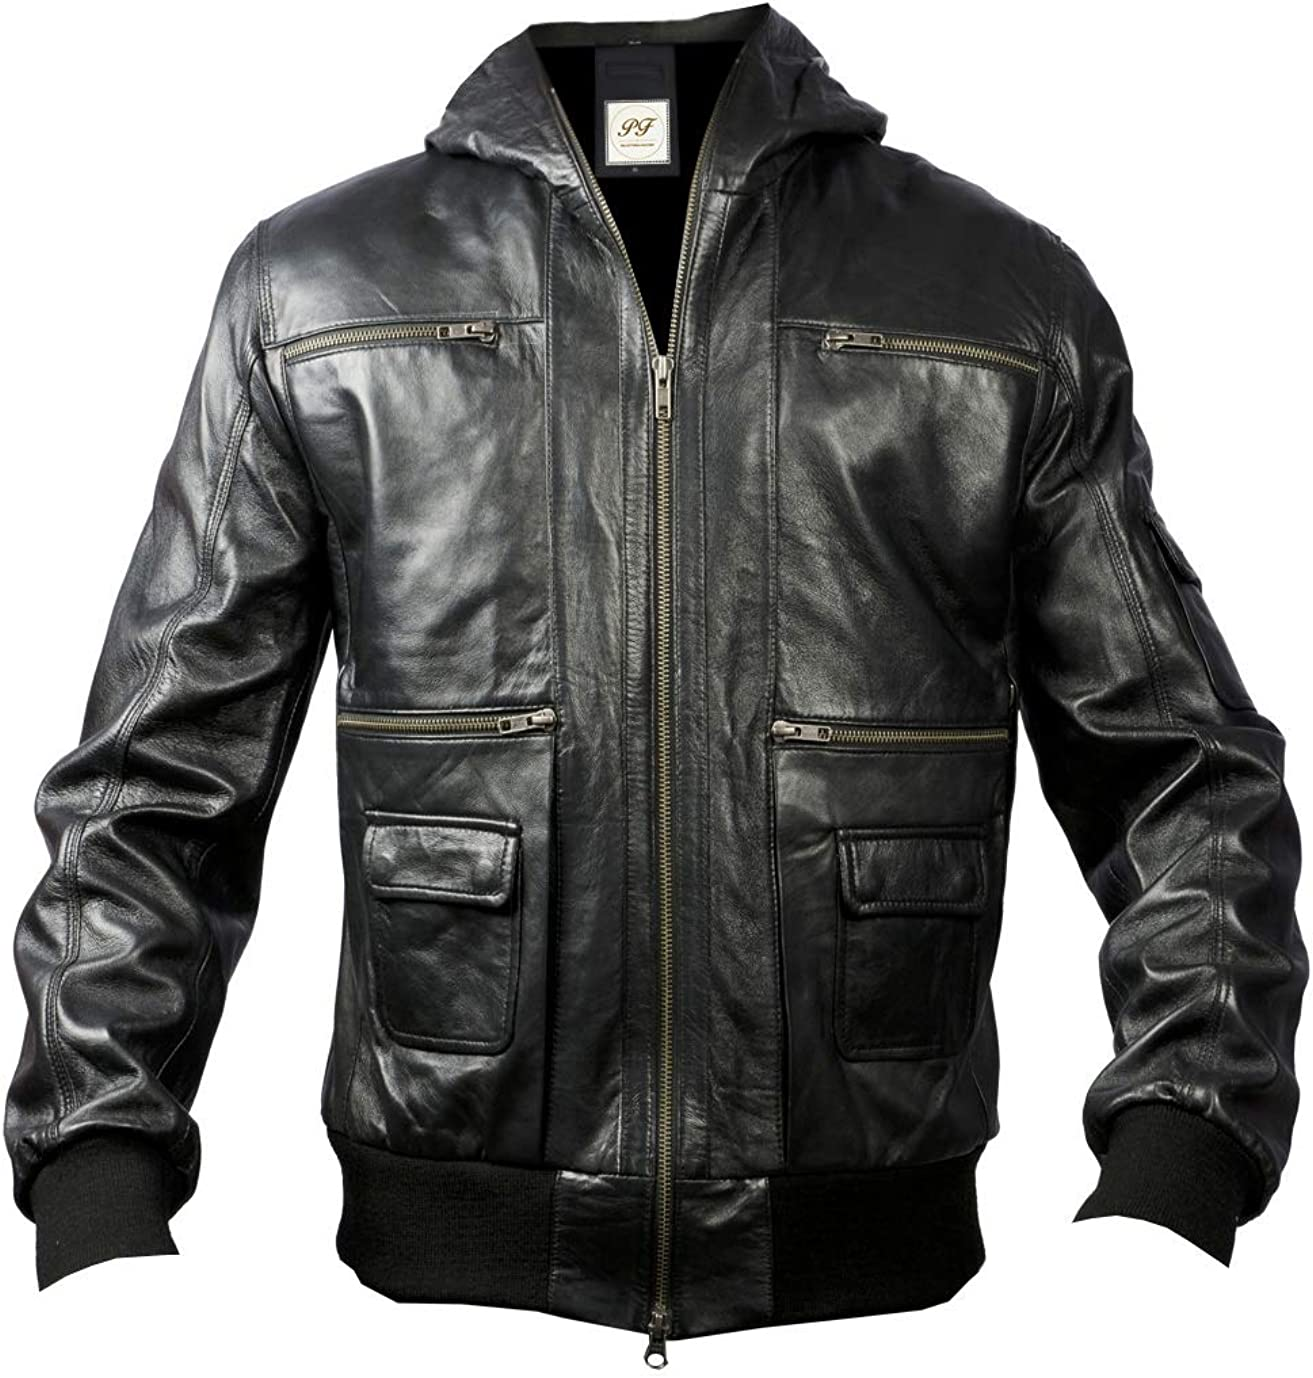 Pelletteria Factory Black Leather Mens Bomber Jacket with Hood - Big and Tall Bomber Jacket Men